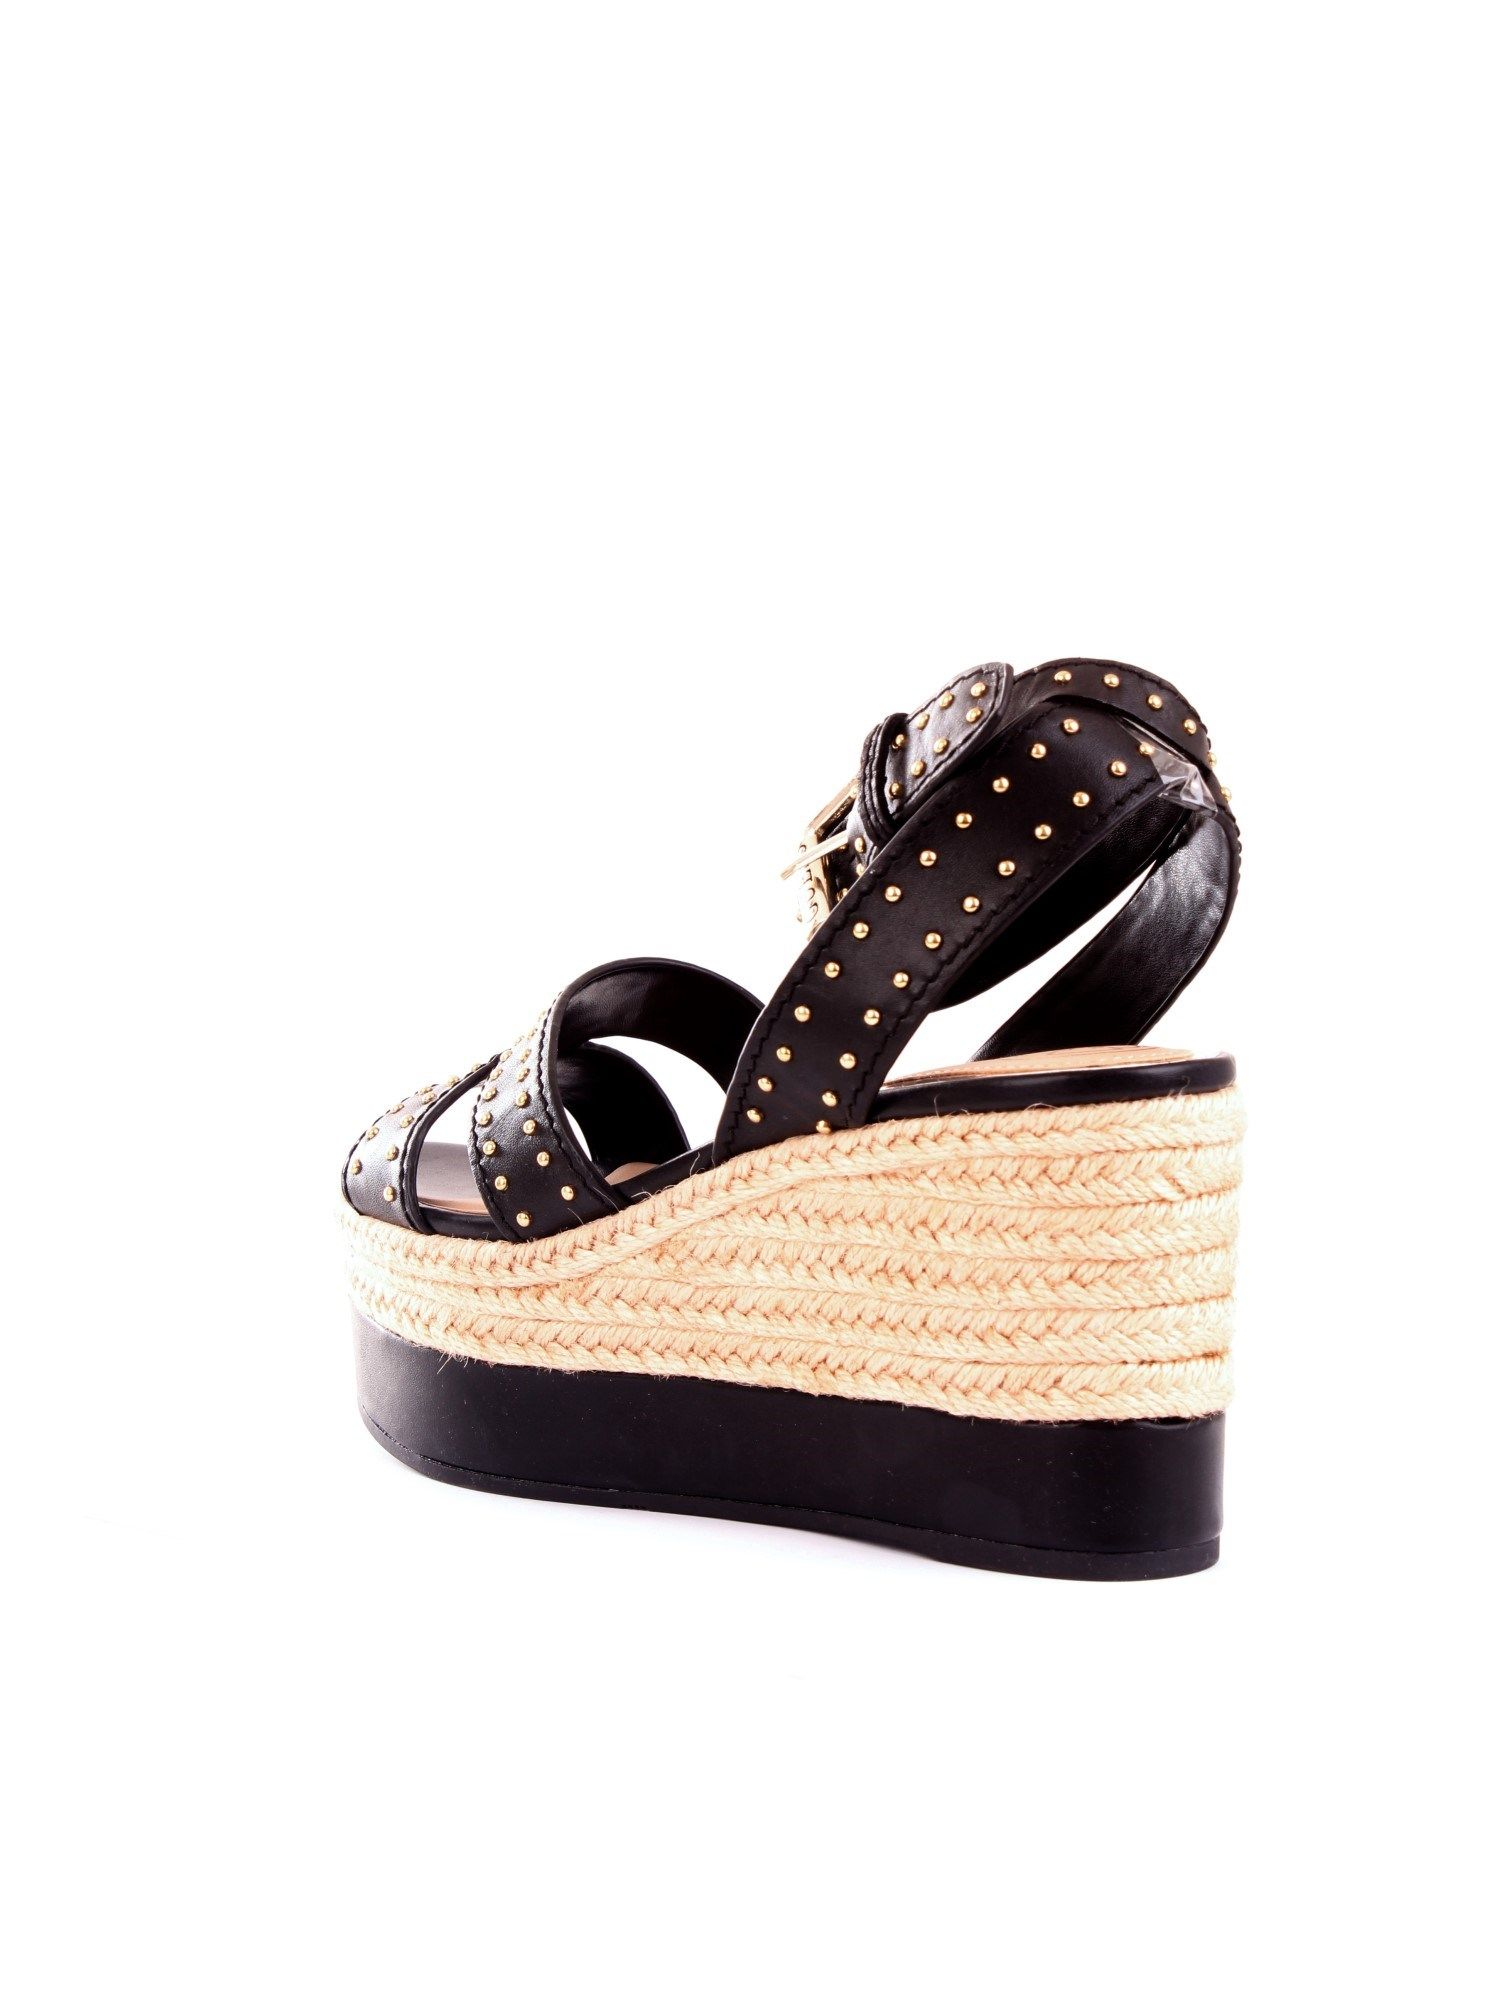 GUESS Wedges GUESS WOMEN'S BLACK SYNTHETIC FIBERS WEDGES